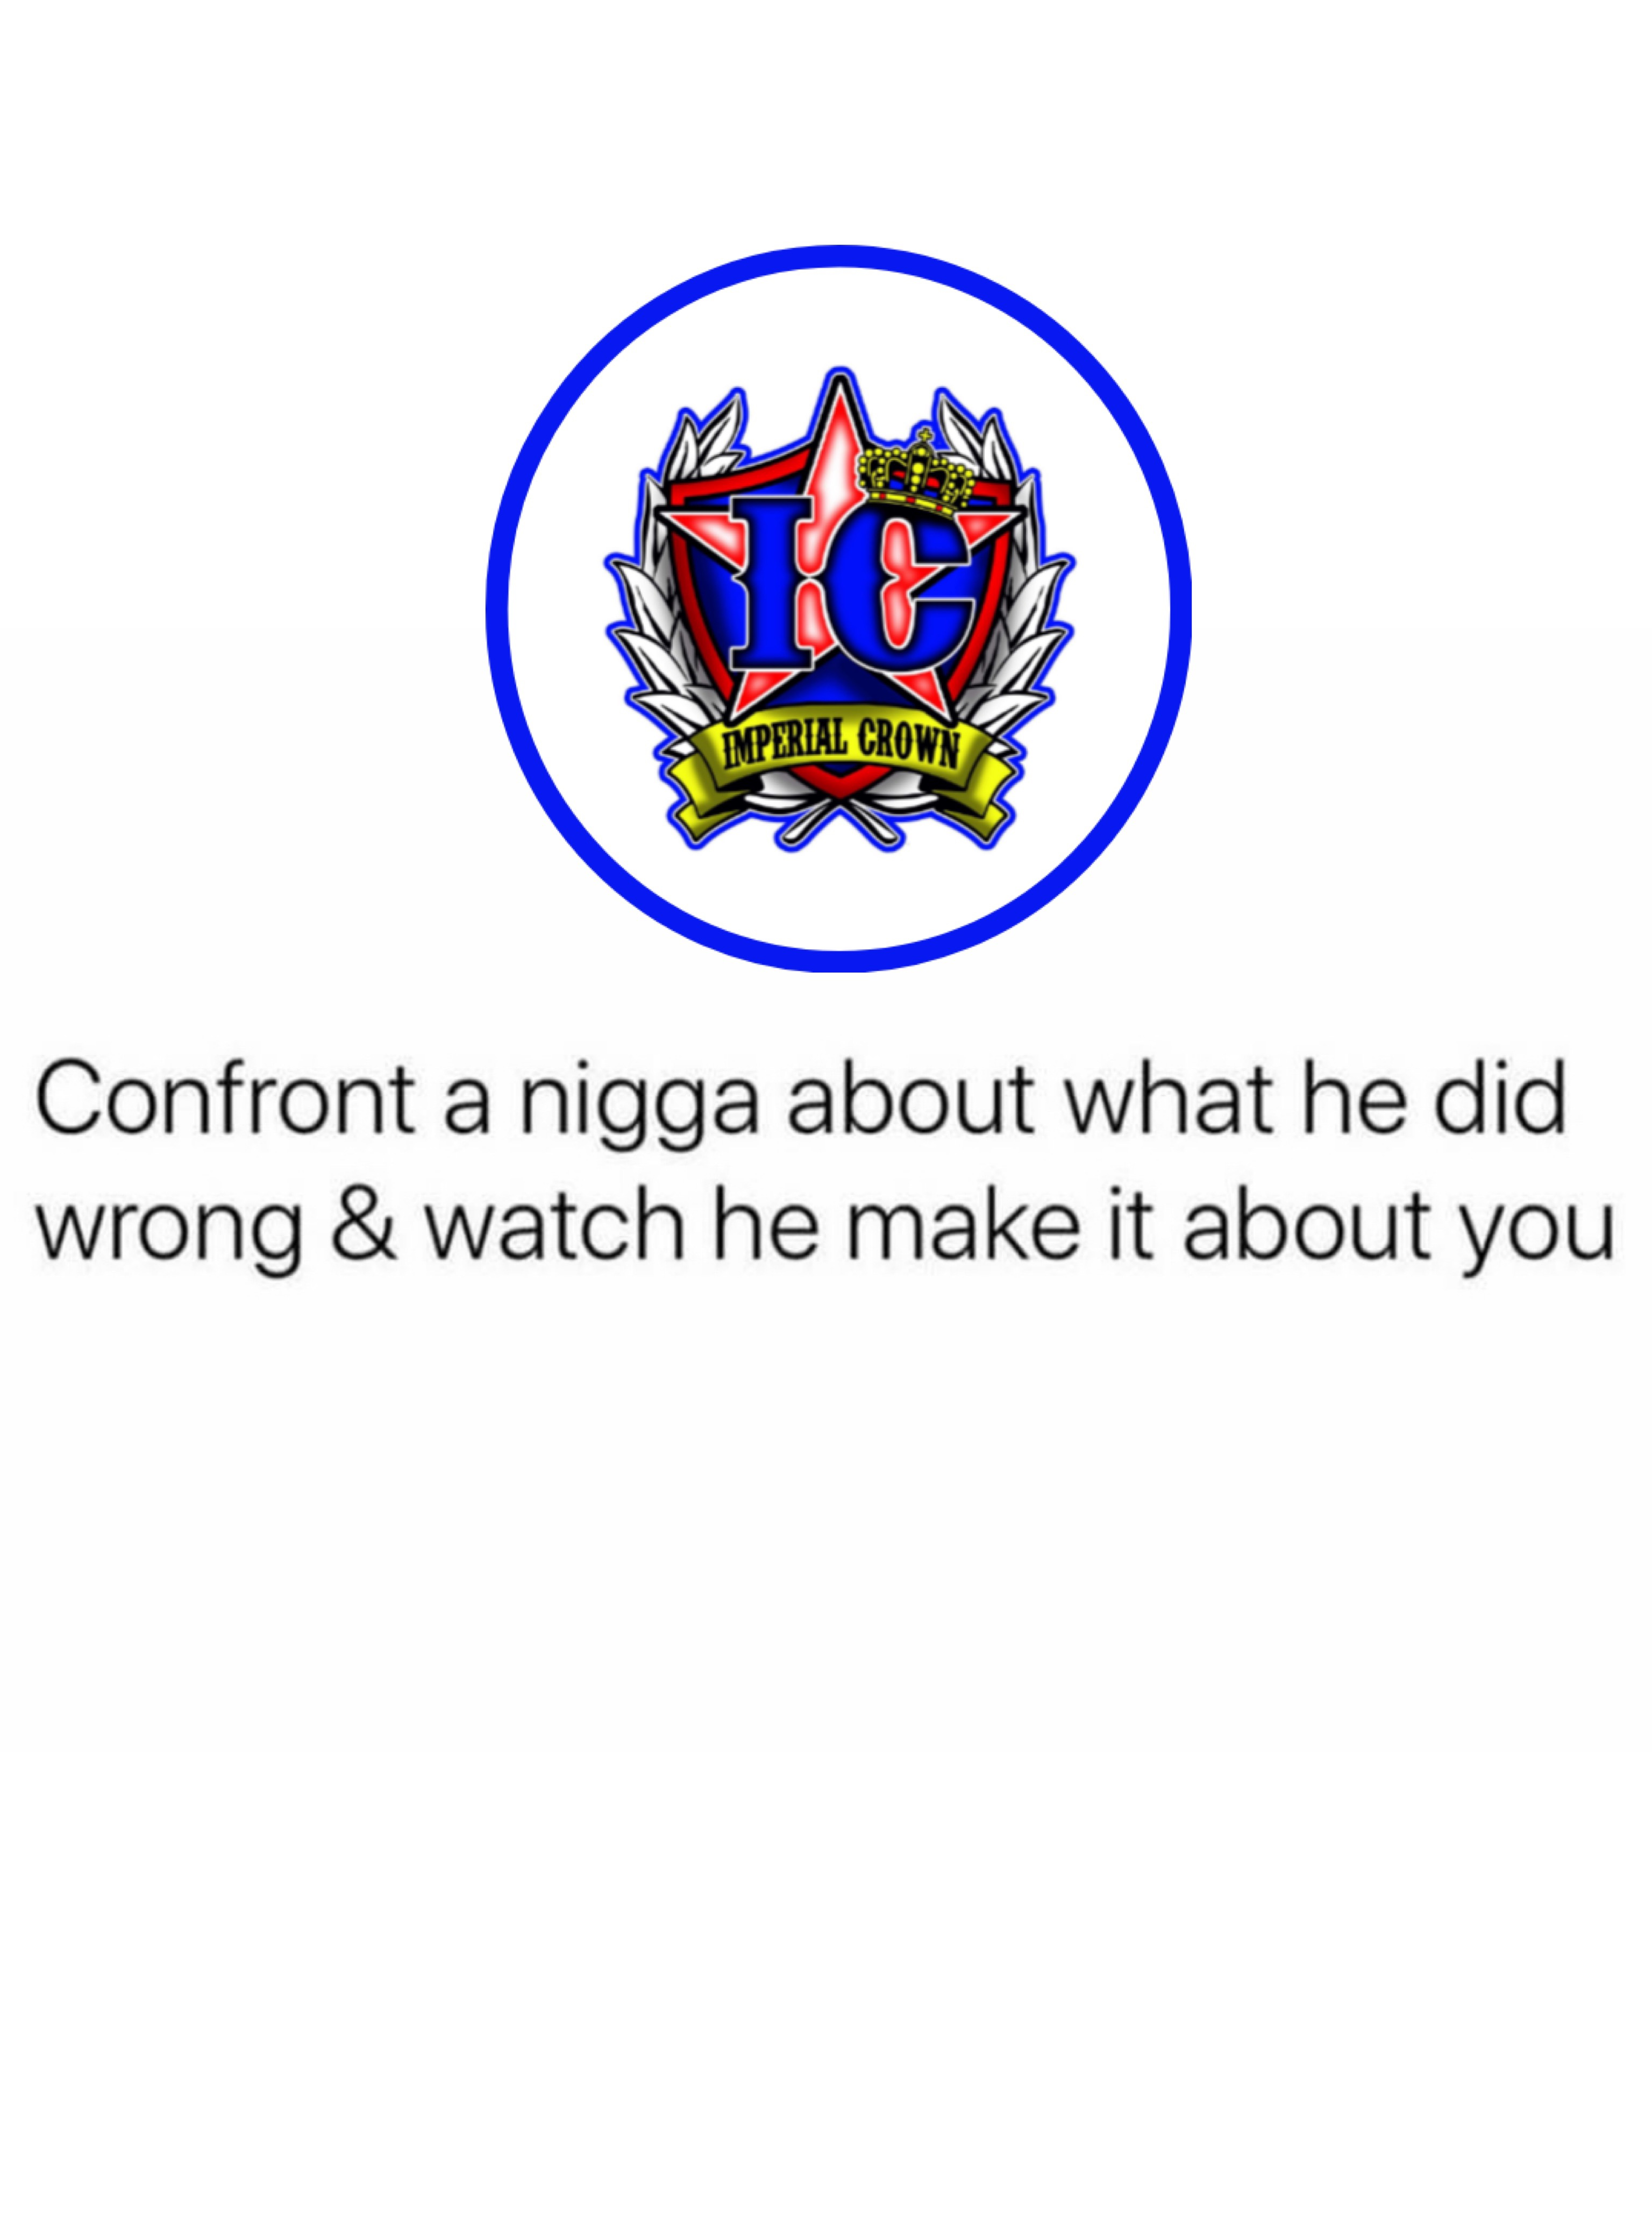 Confront a nigga about what he did wrong & watch he make it about you